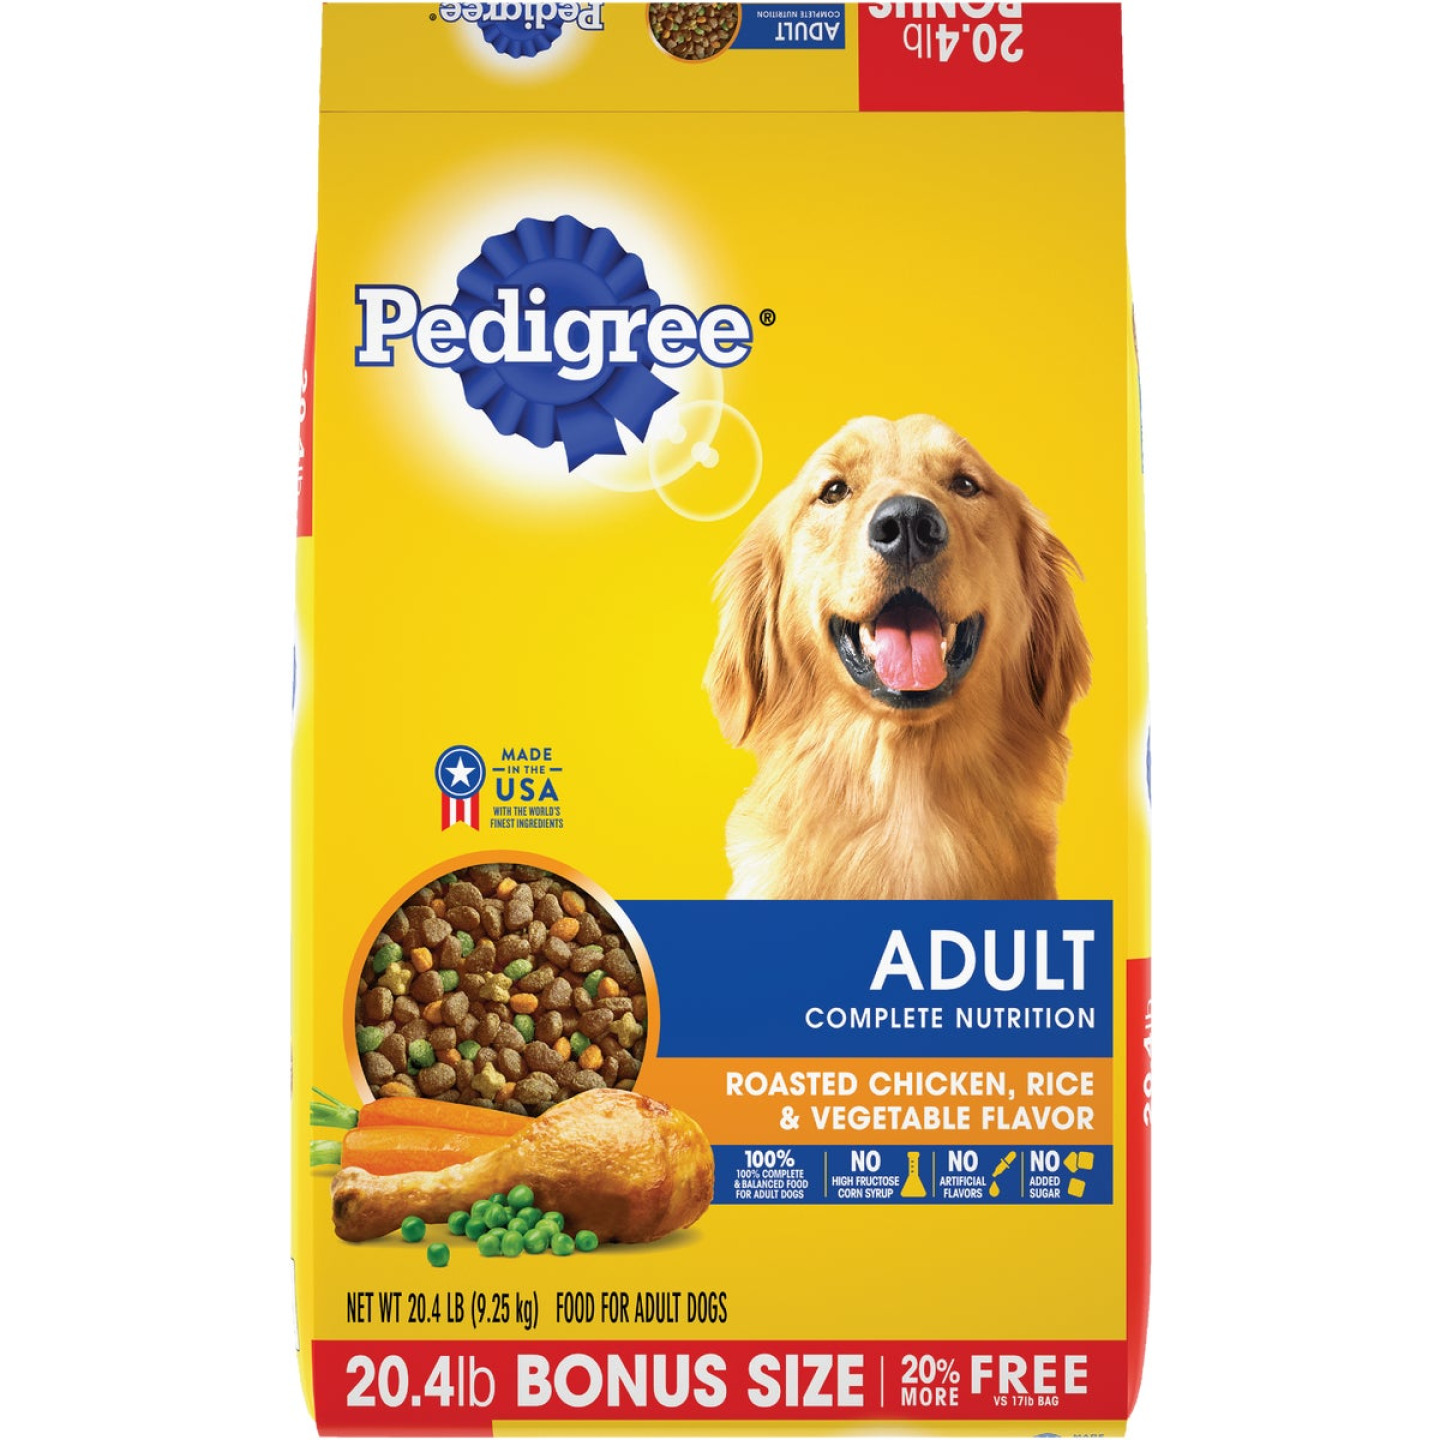 Pedigree Complete Nutrition 20.4 Lb. Roasted Chicken, Rice, & Vegetable Adult Dry Dog Food Image 1